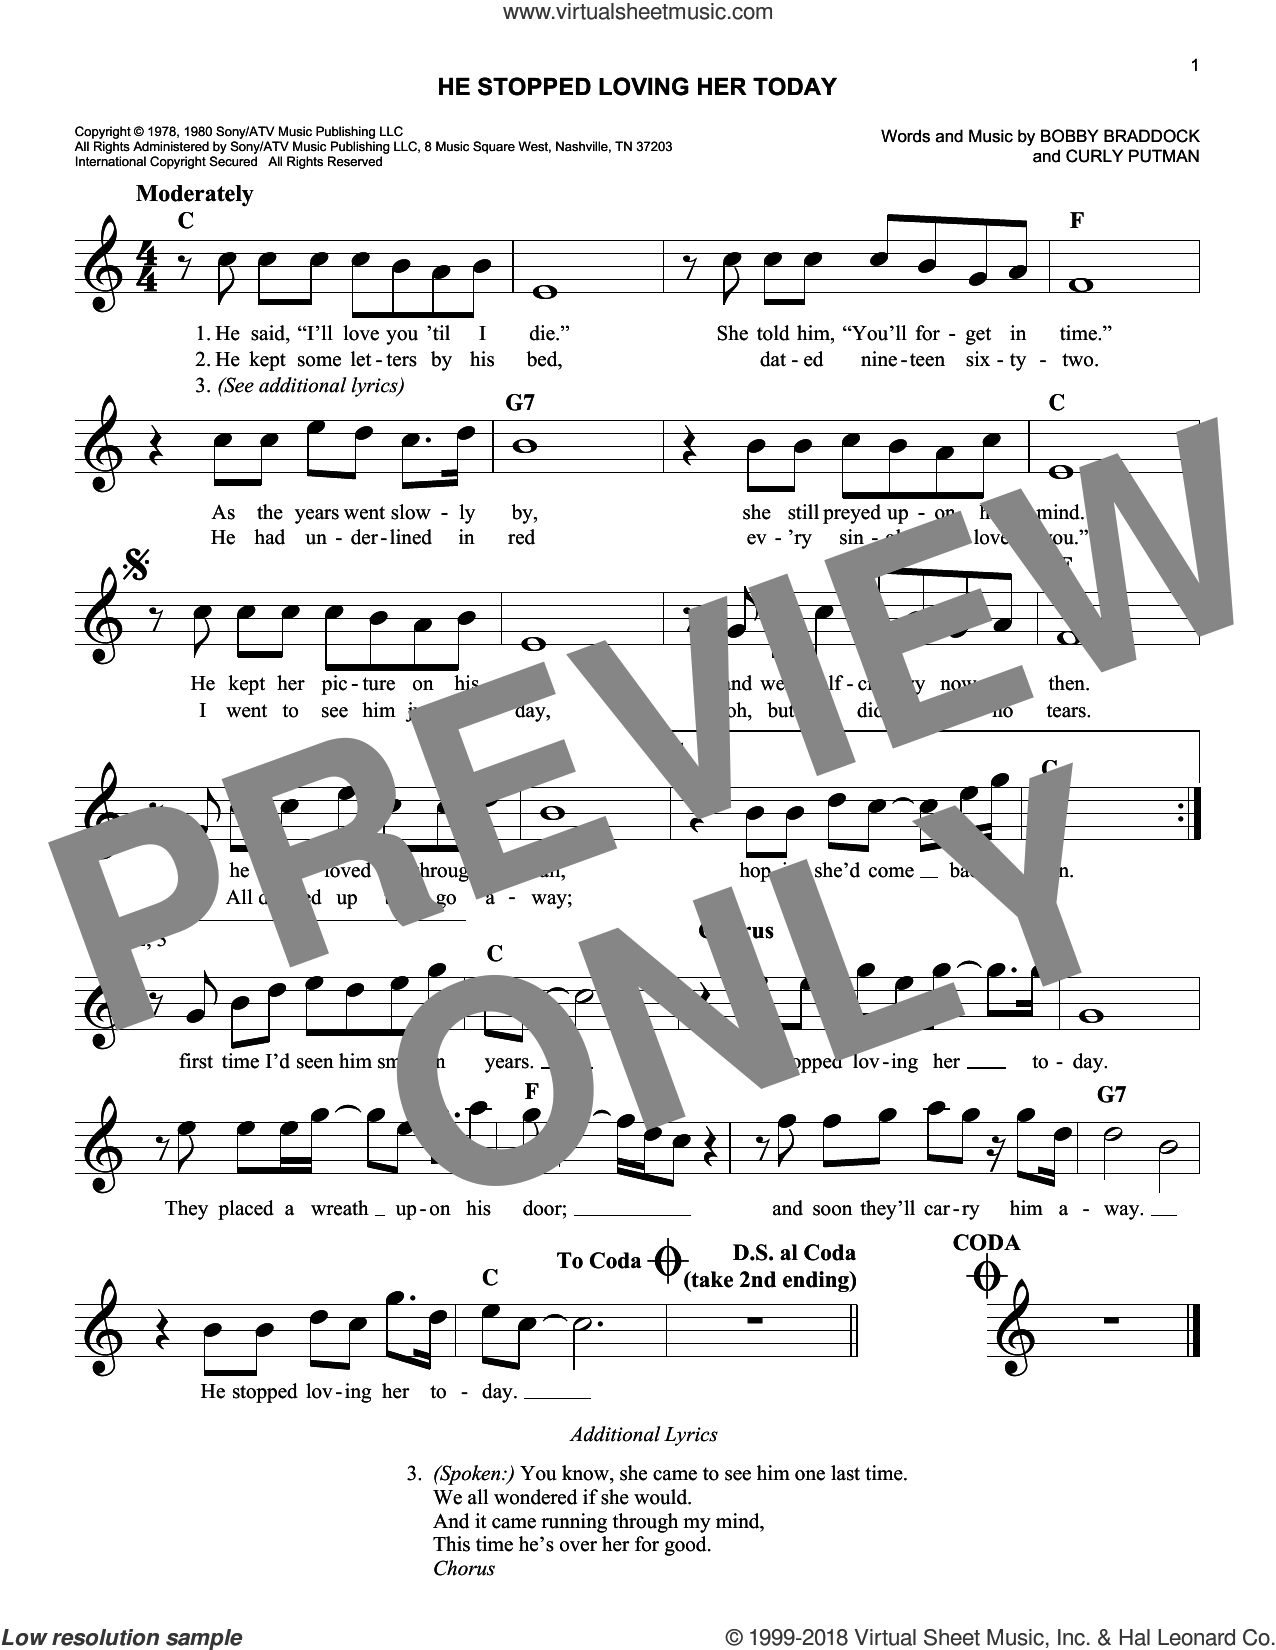 He Stopped Loving Her Today sheet music for voice and other instruments (fake book) by George Jones, Bobby Braddock and Curly Putman, intermediate skill level